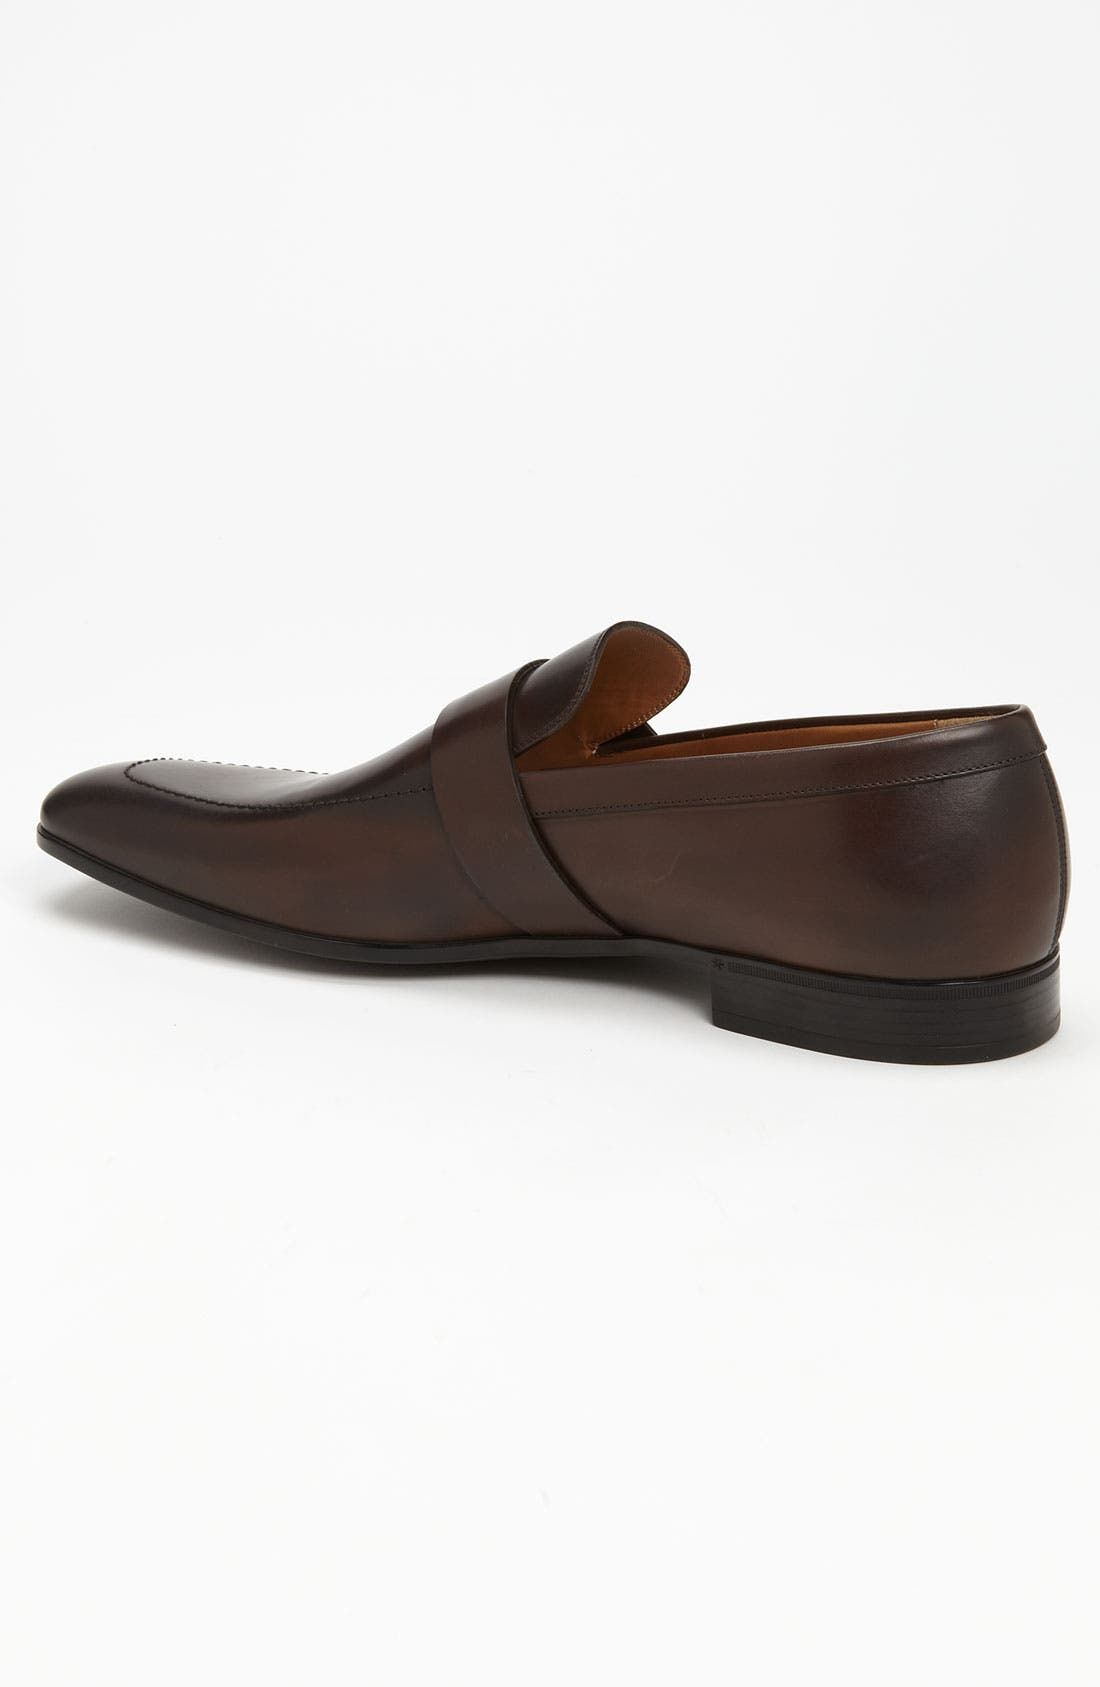 Alternate Image 2  - Gucci 'Dynamics' Loafer